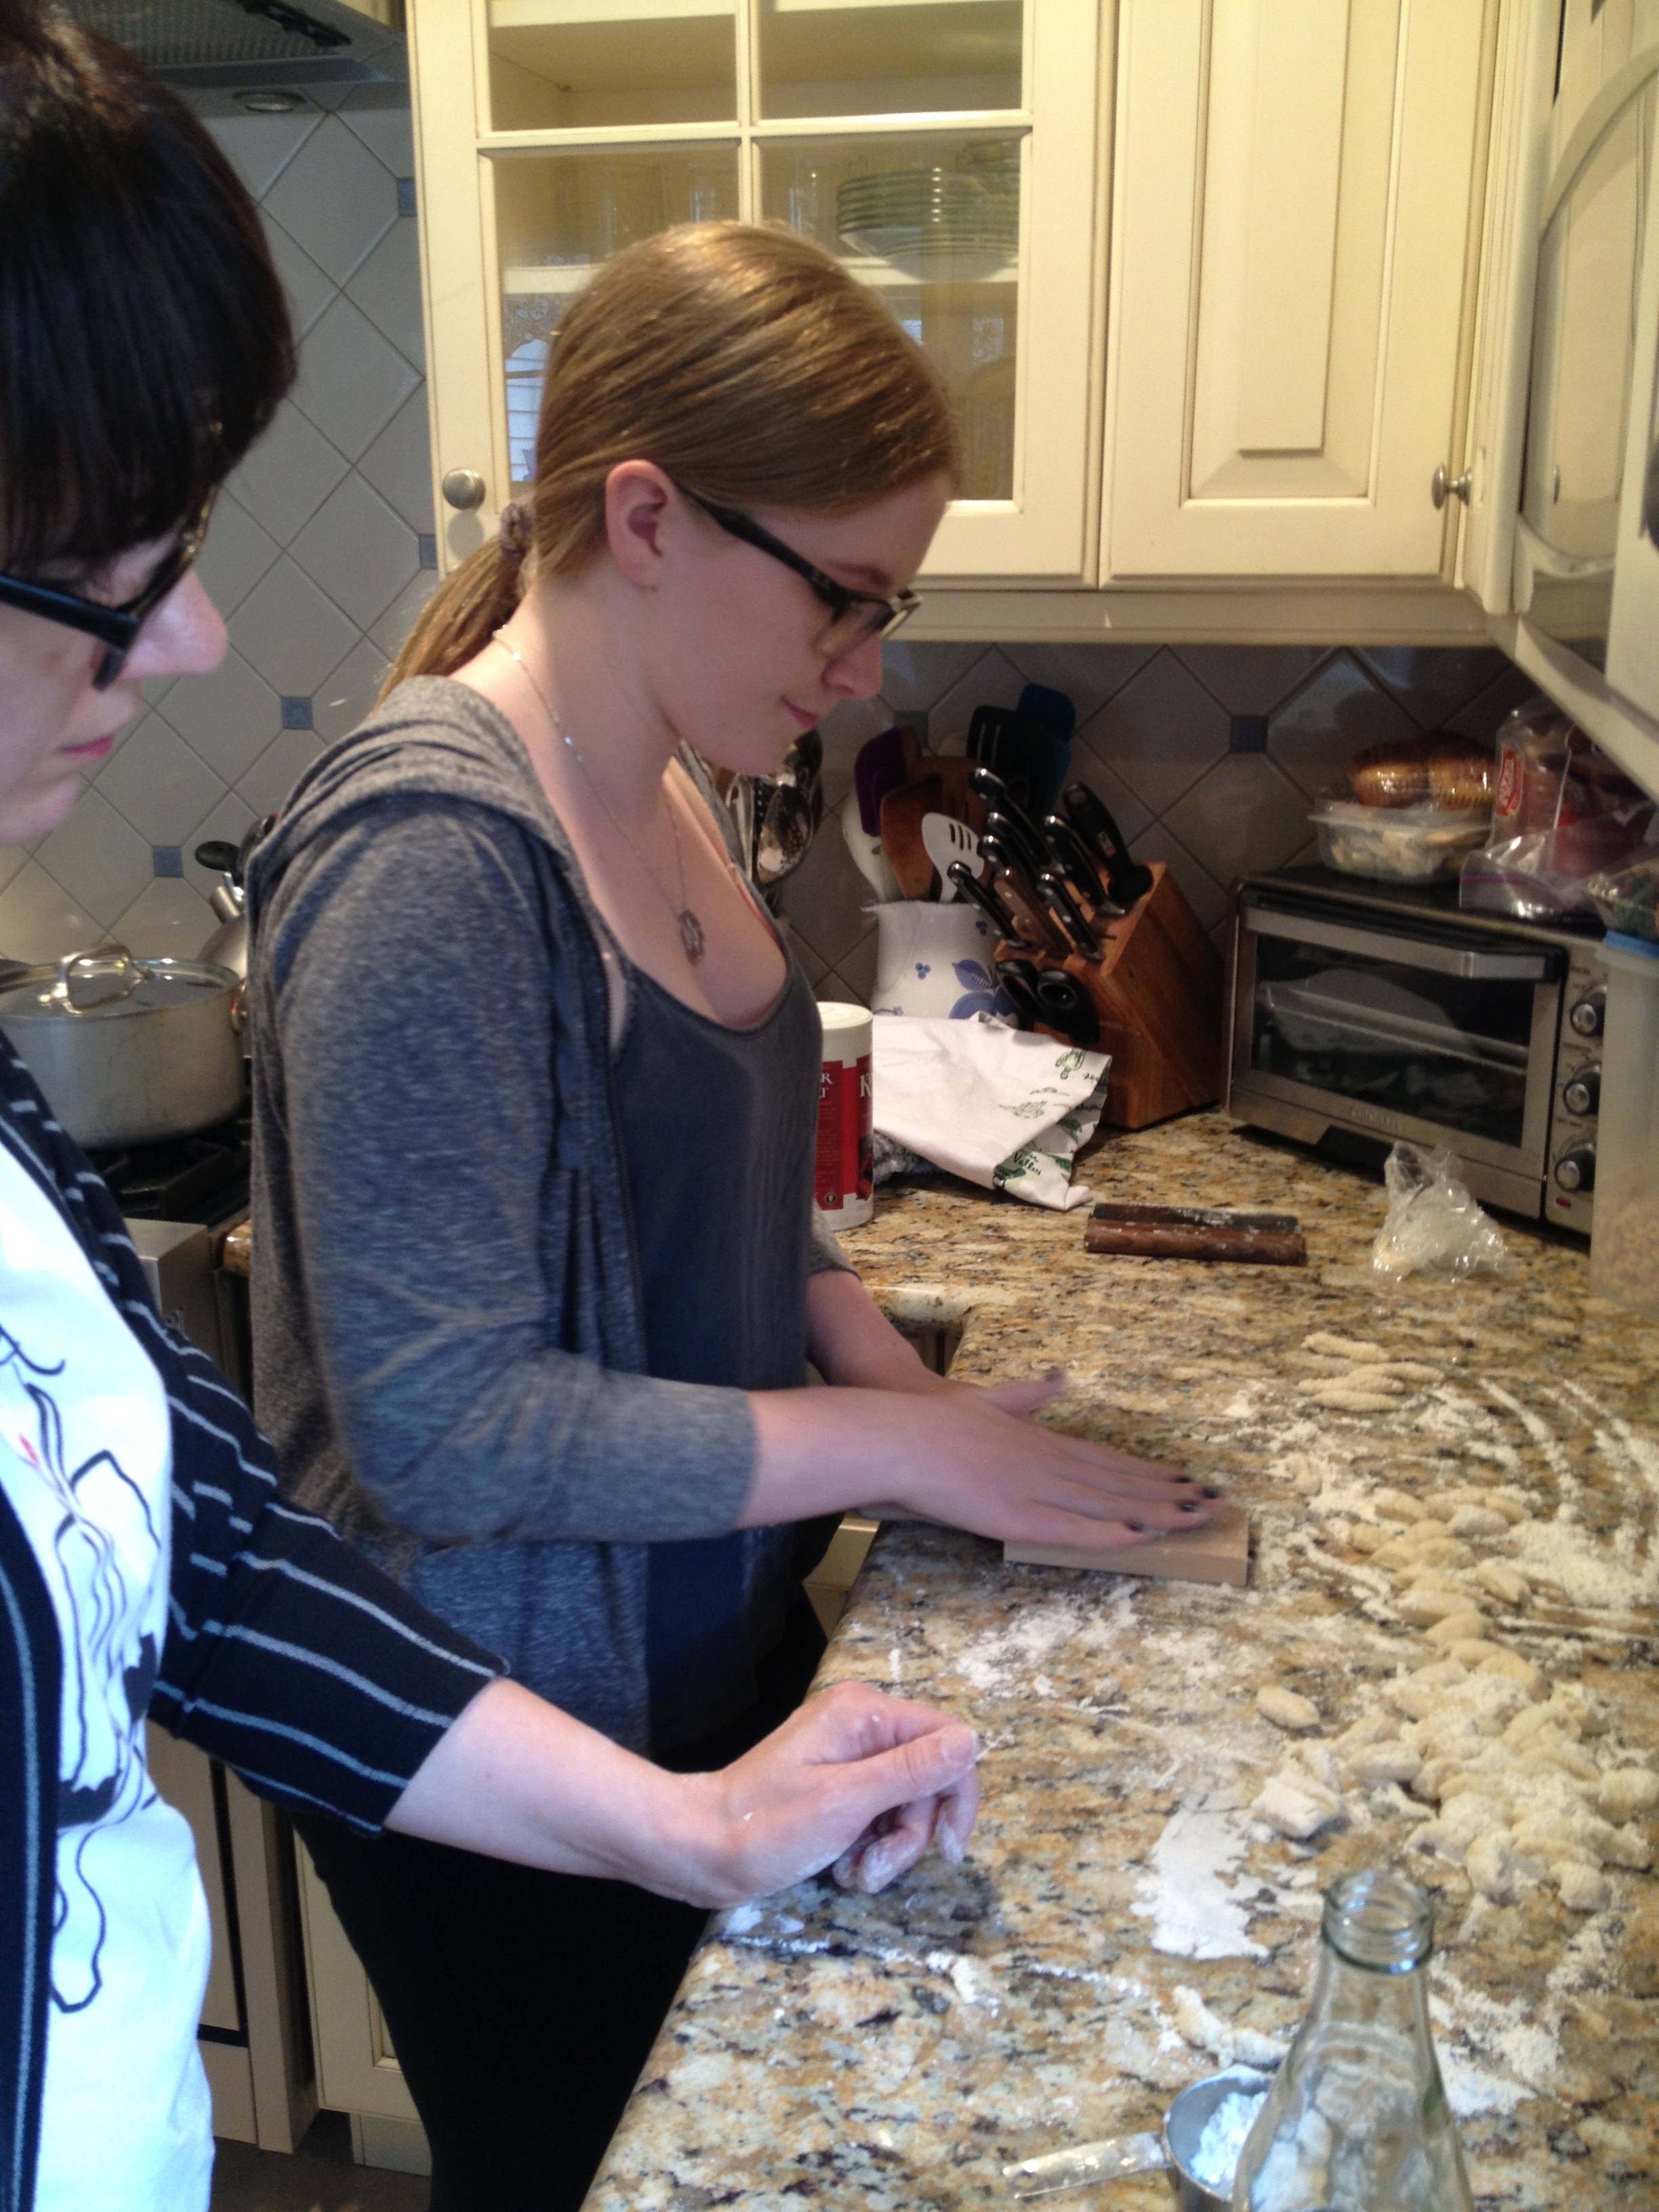 Gnocchi production underway with my niece Lora.